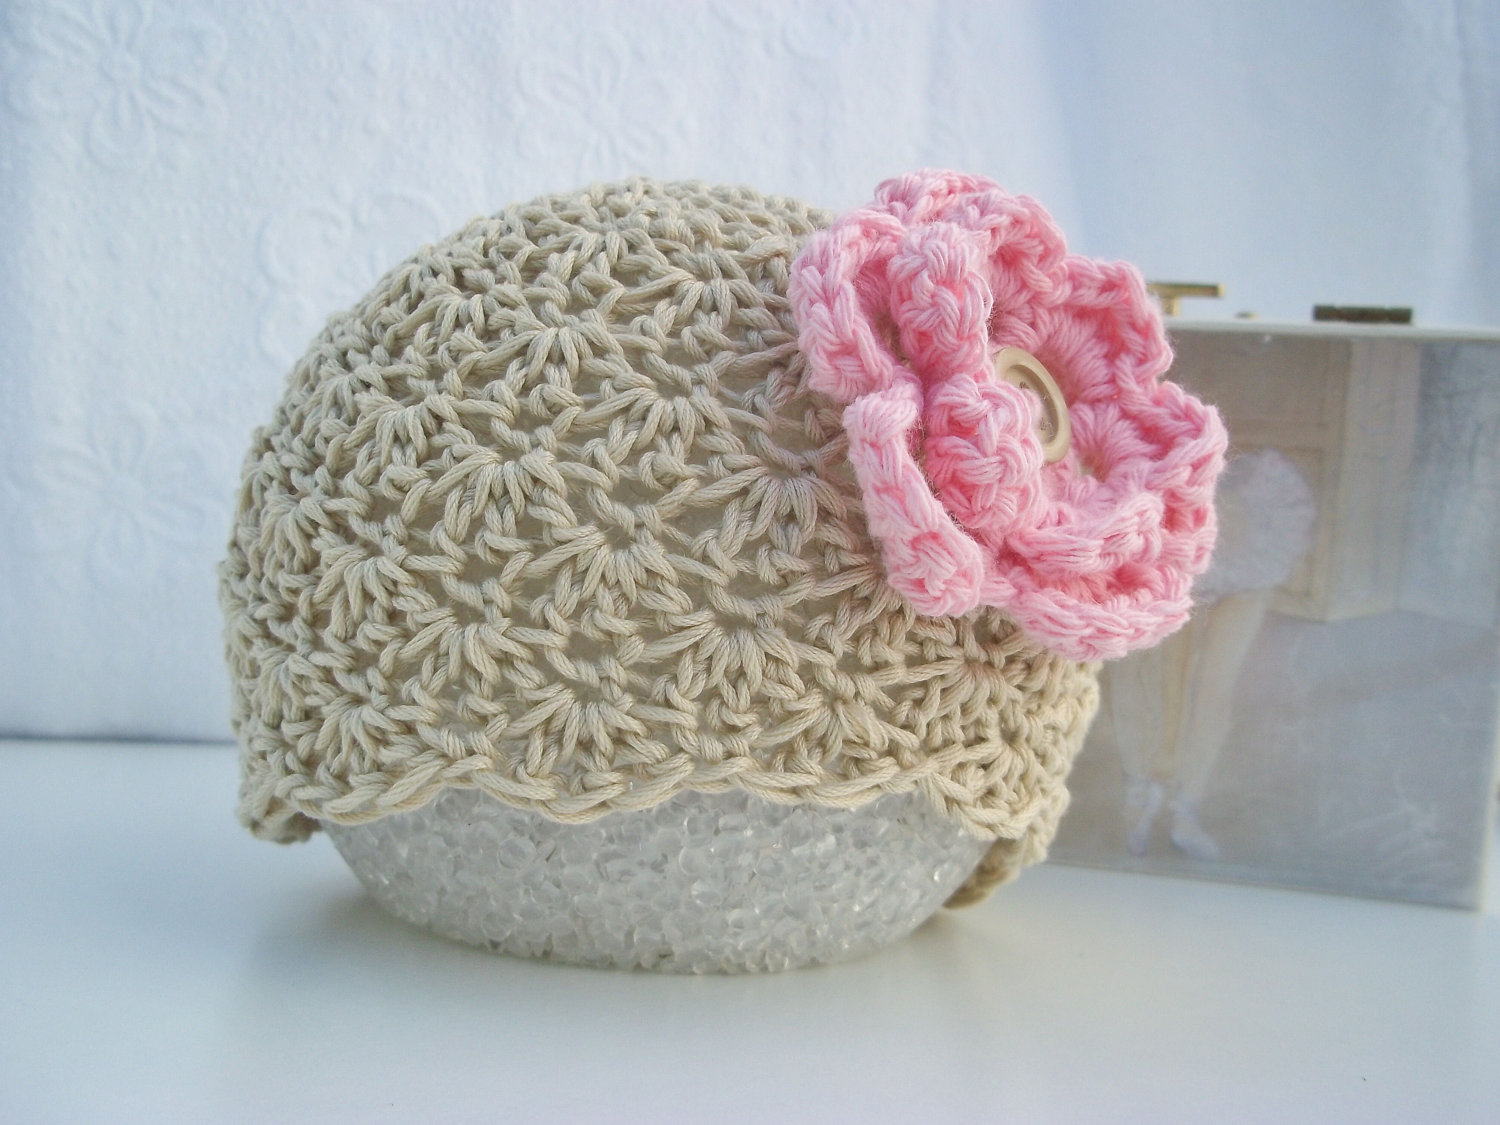 Crochet Patterns Newborn Hats : Crochet baby hat - Baby girl hat - Newborn baby hat - Beige - Tan ...